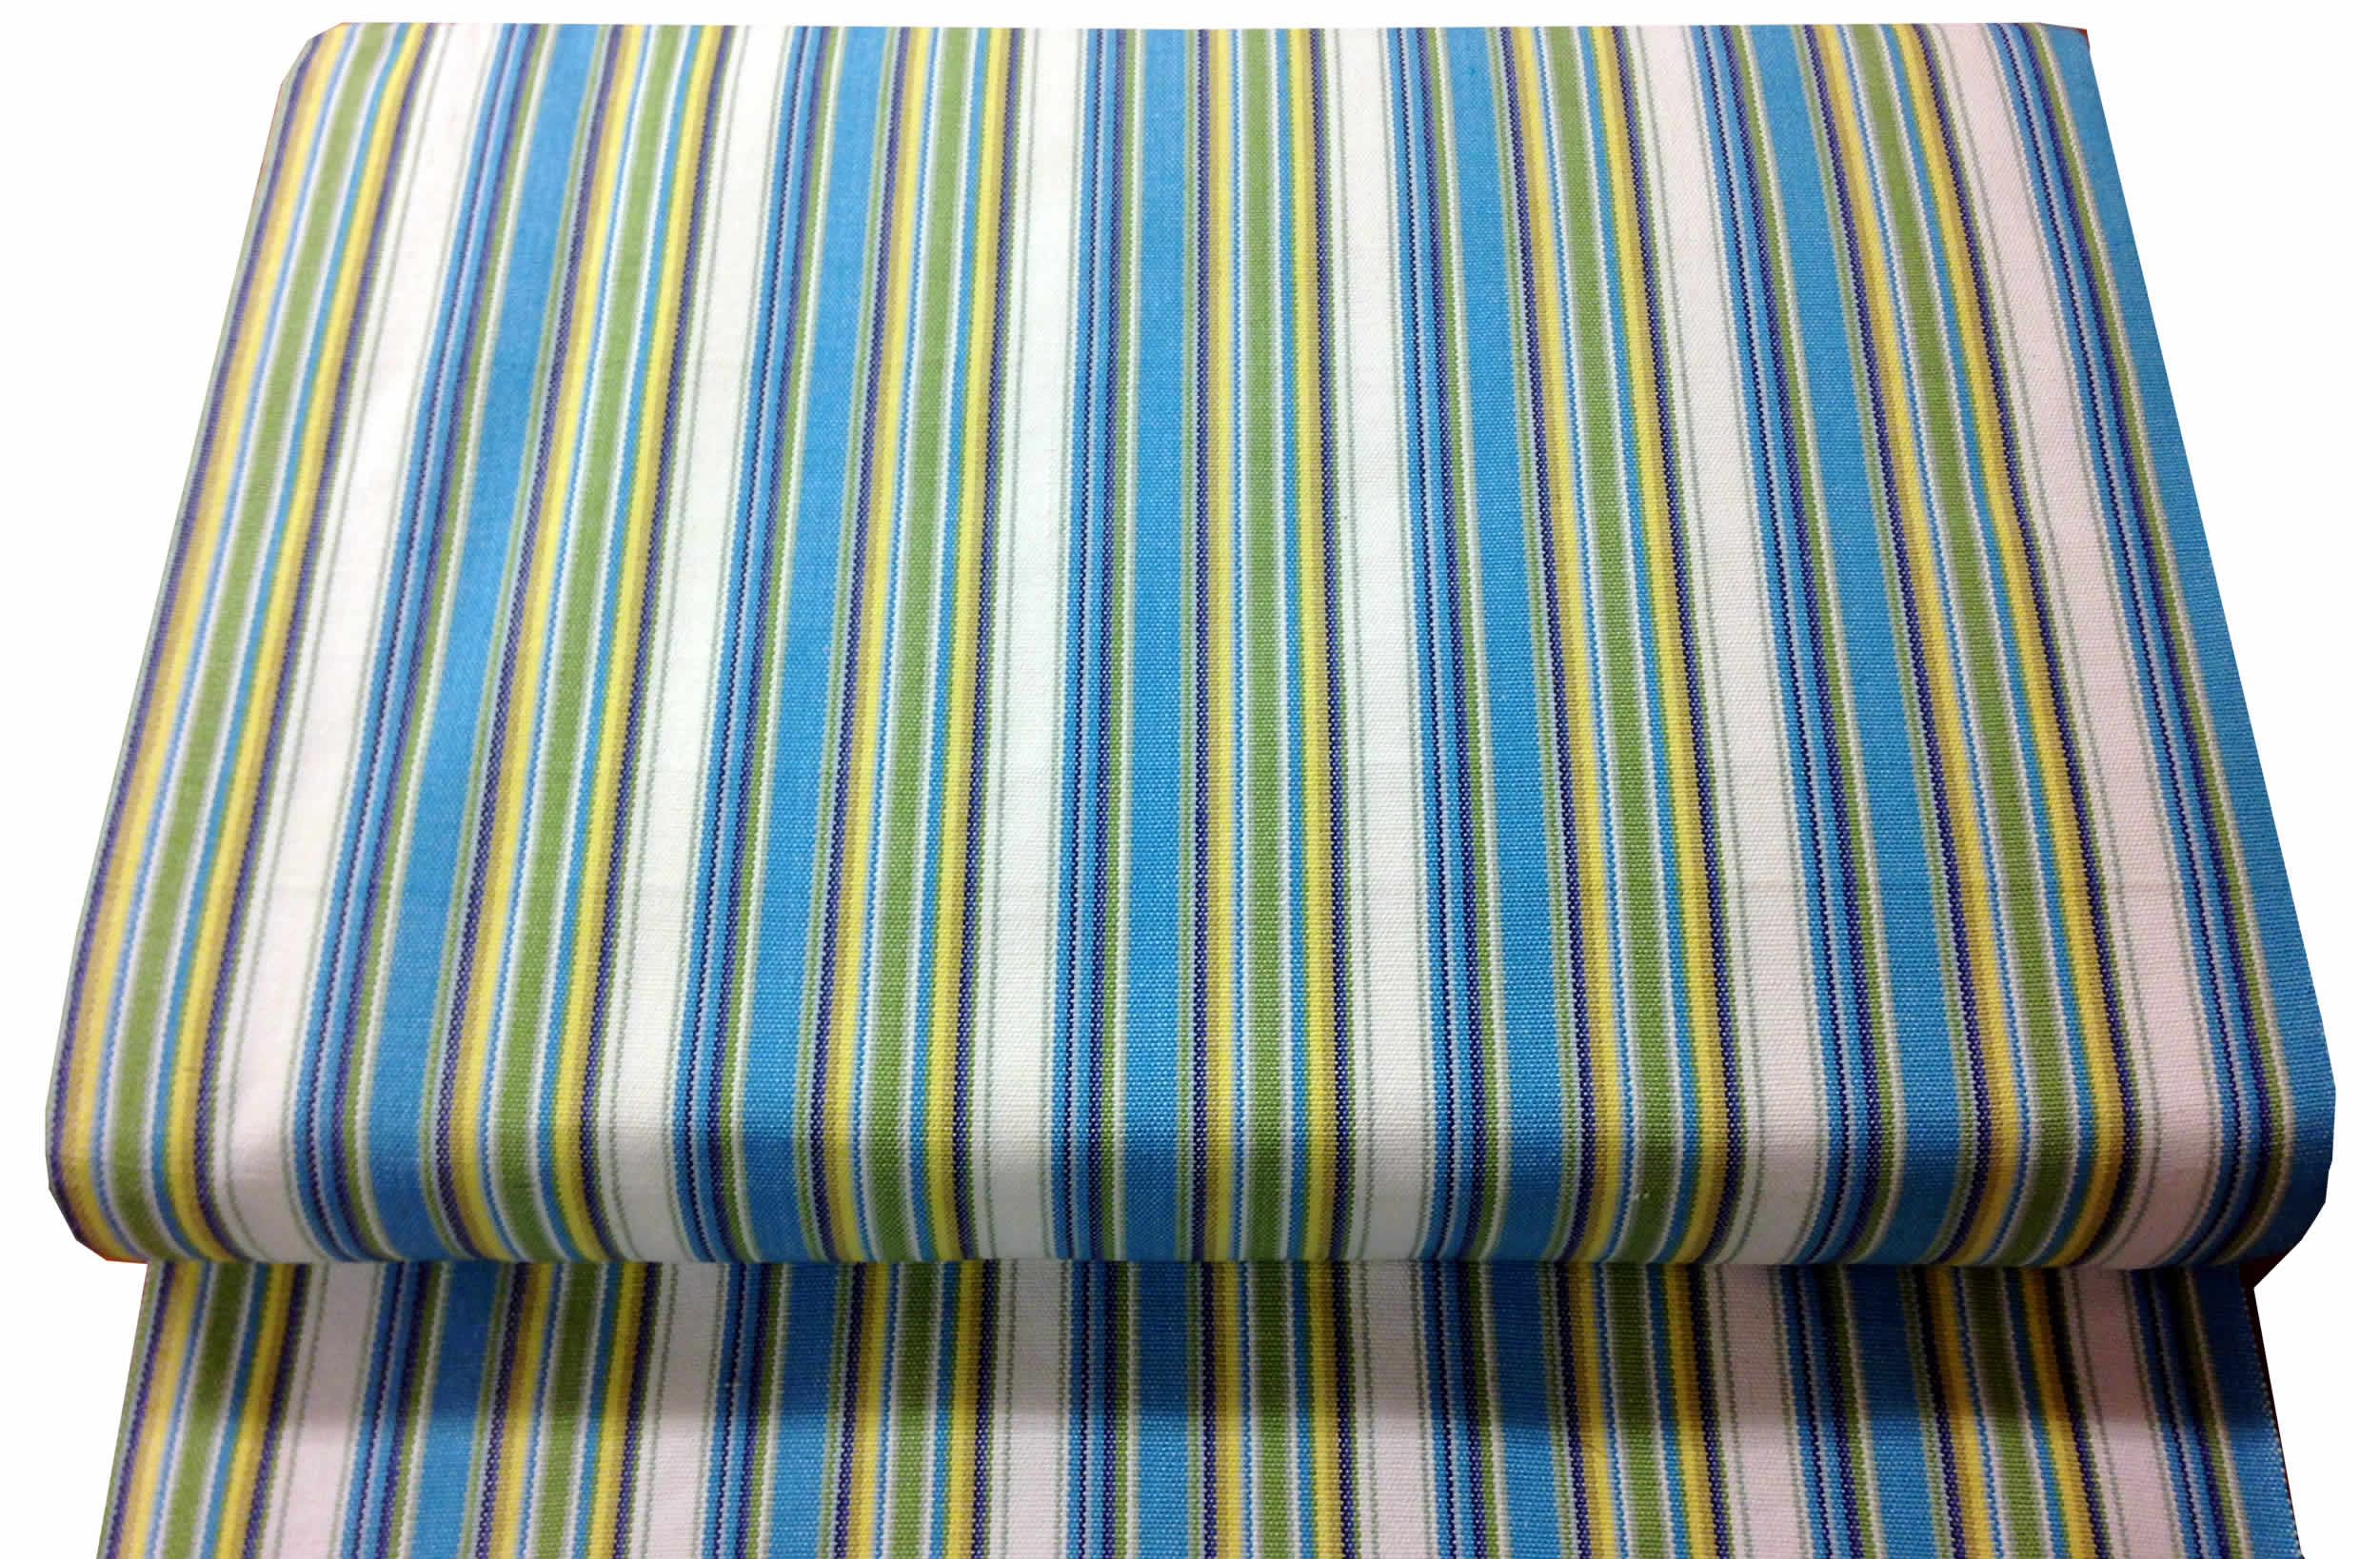 turquoise, green, white- Deckchair Canvas | Deckchair Fabrics | Striped Deck Chair Fabrics